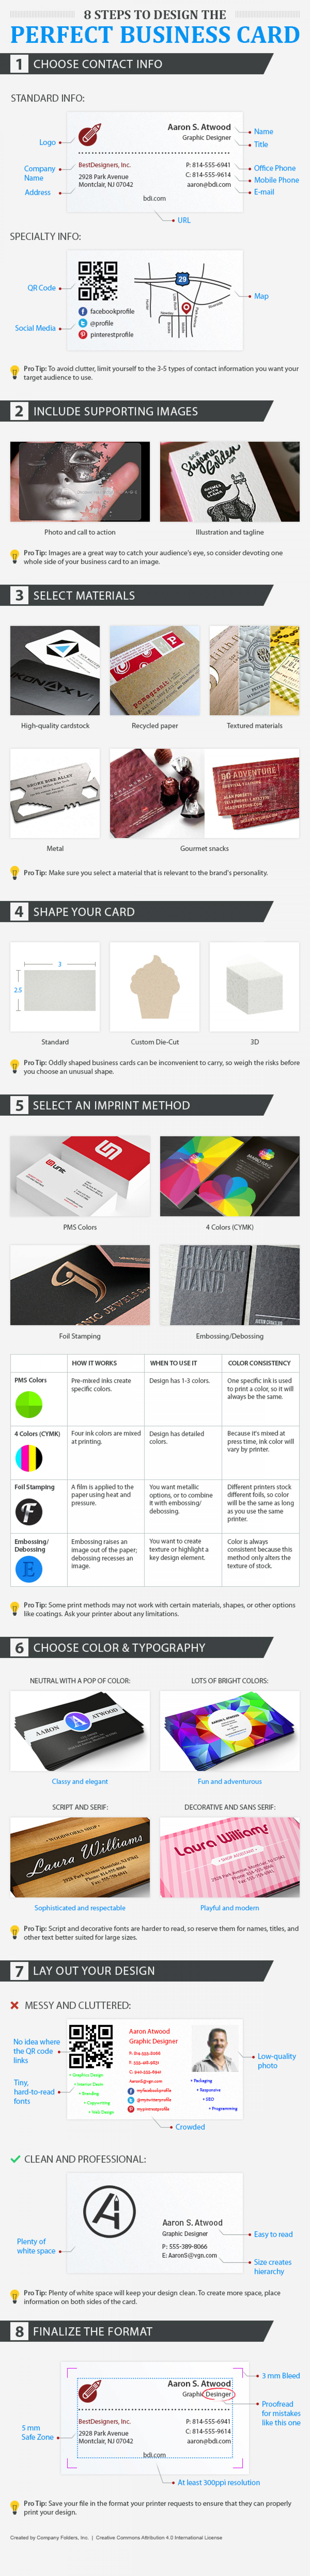 How To Make A Perfect Business Card In 8 Steps Infographic